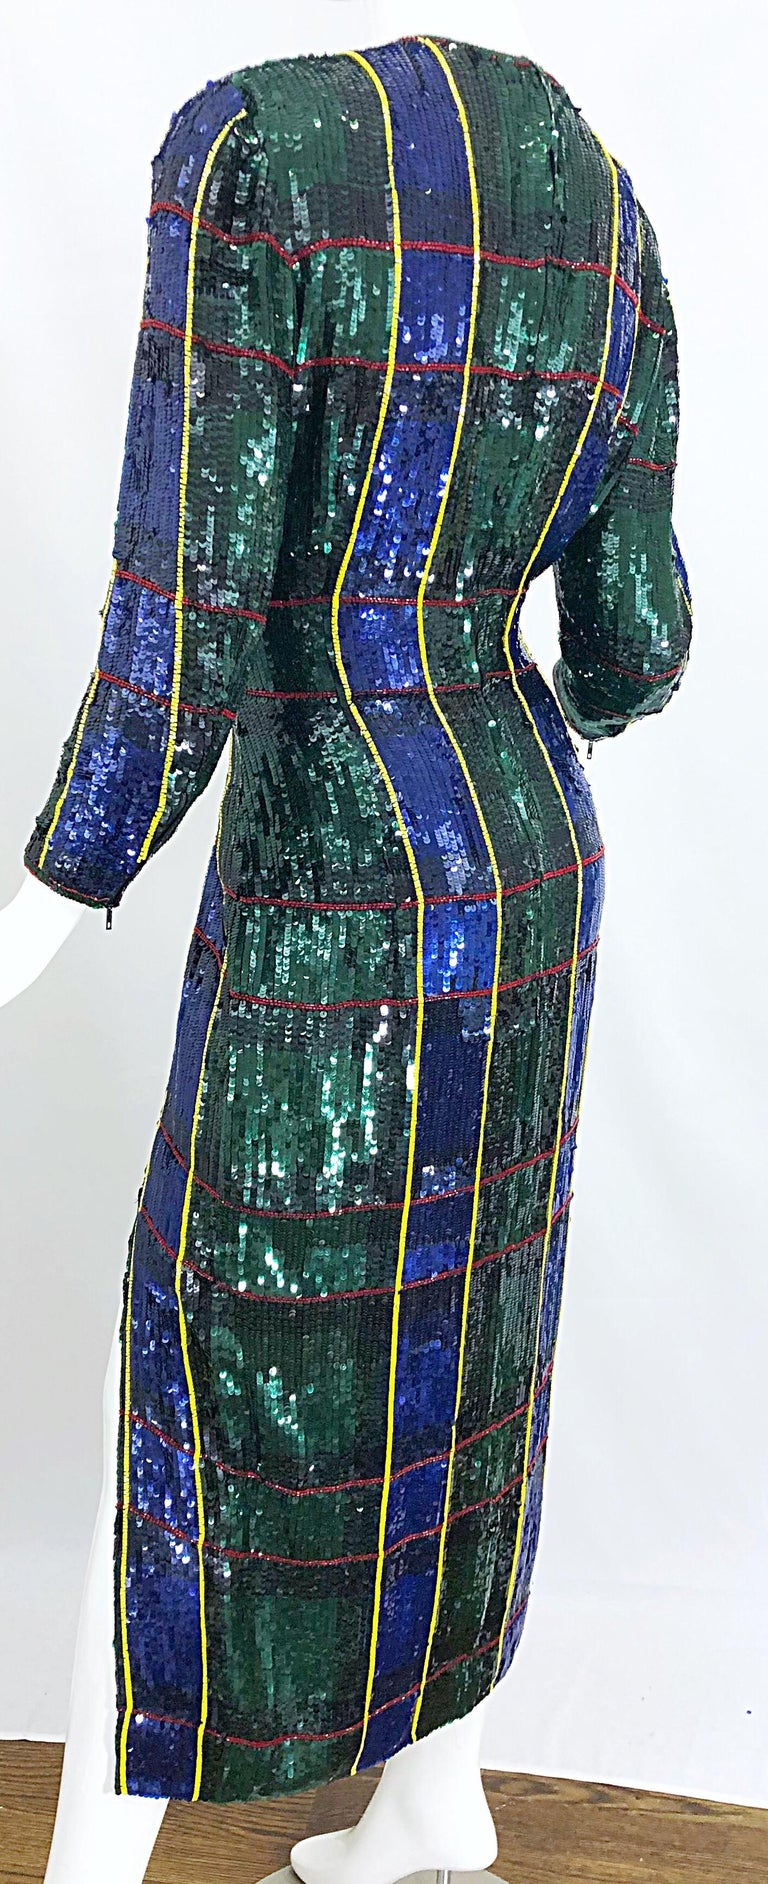 1990s Escada Couture Tartan Plaid Fully Sequined Silk Vintage 90s Evening Gown For Sale 2